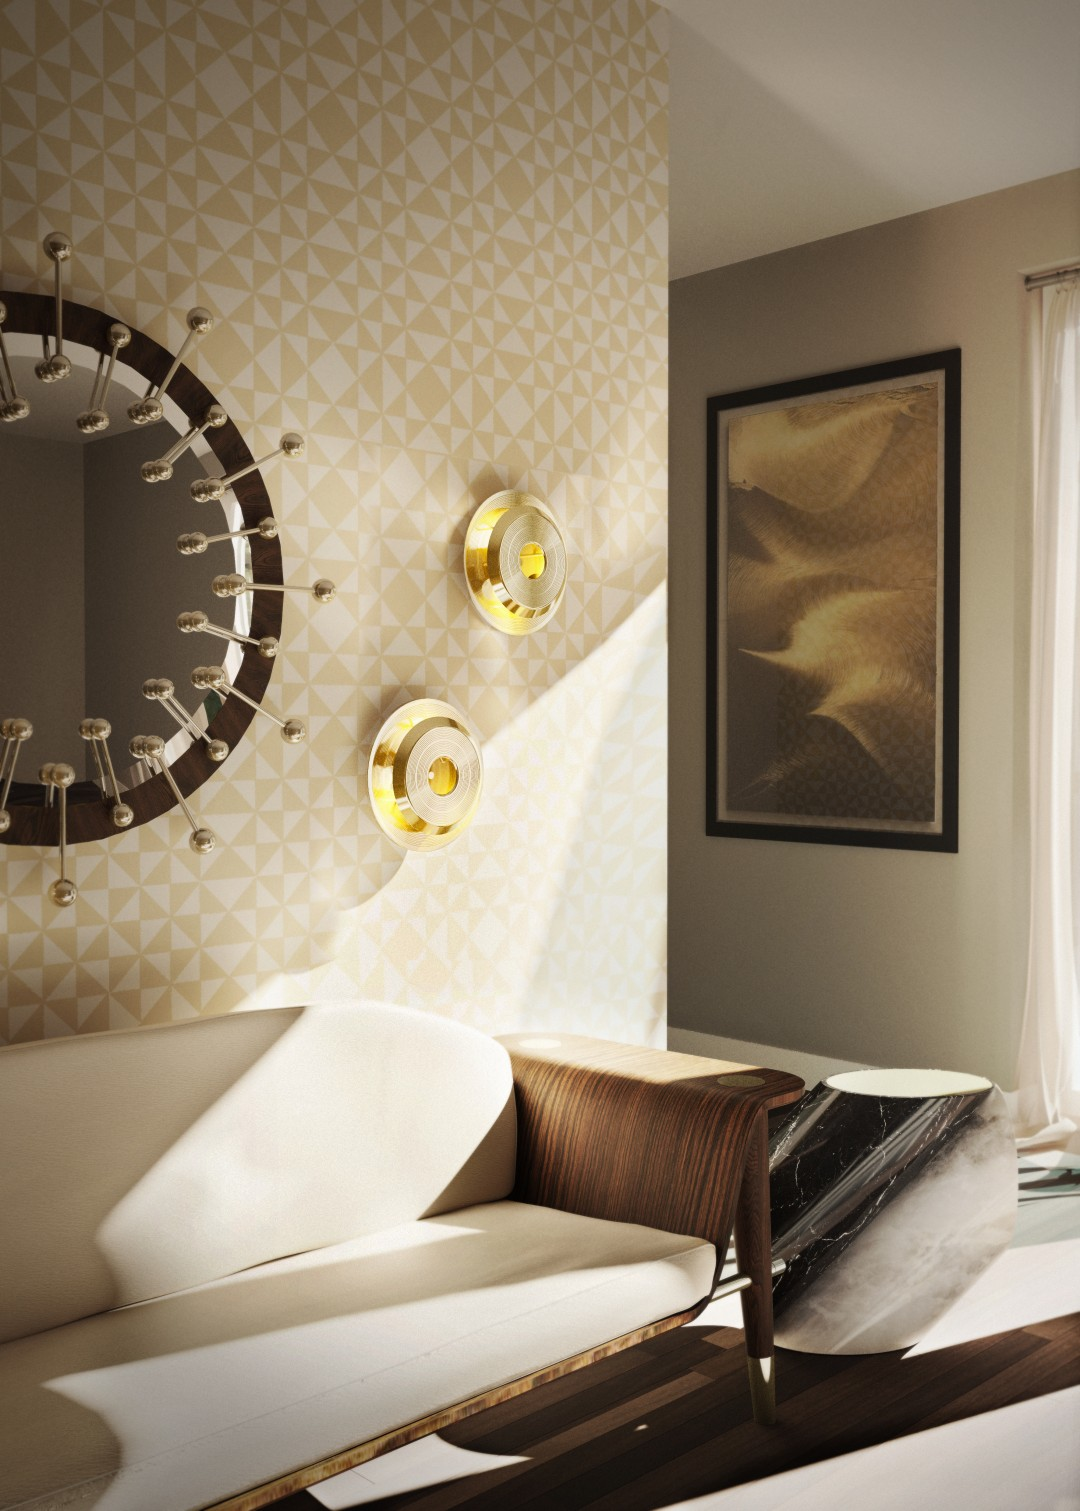 The Best Modern Wall Lamps To Elevate Your Home Decor! 15